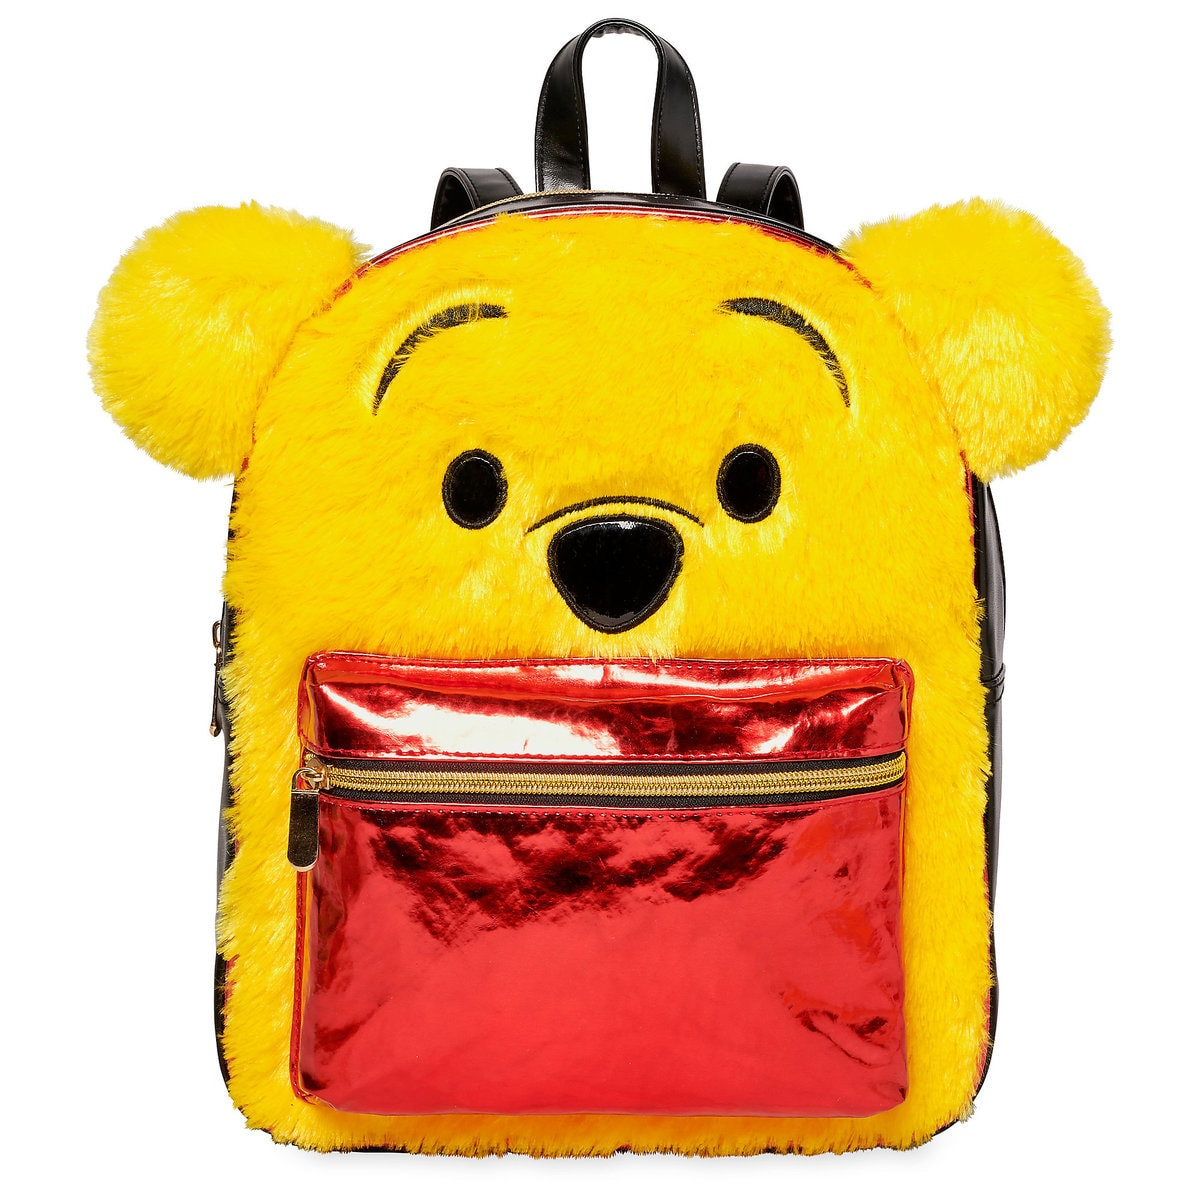 63e282954 Product Image of Winnie the Pooh Fashion Backpack # 1